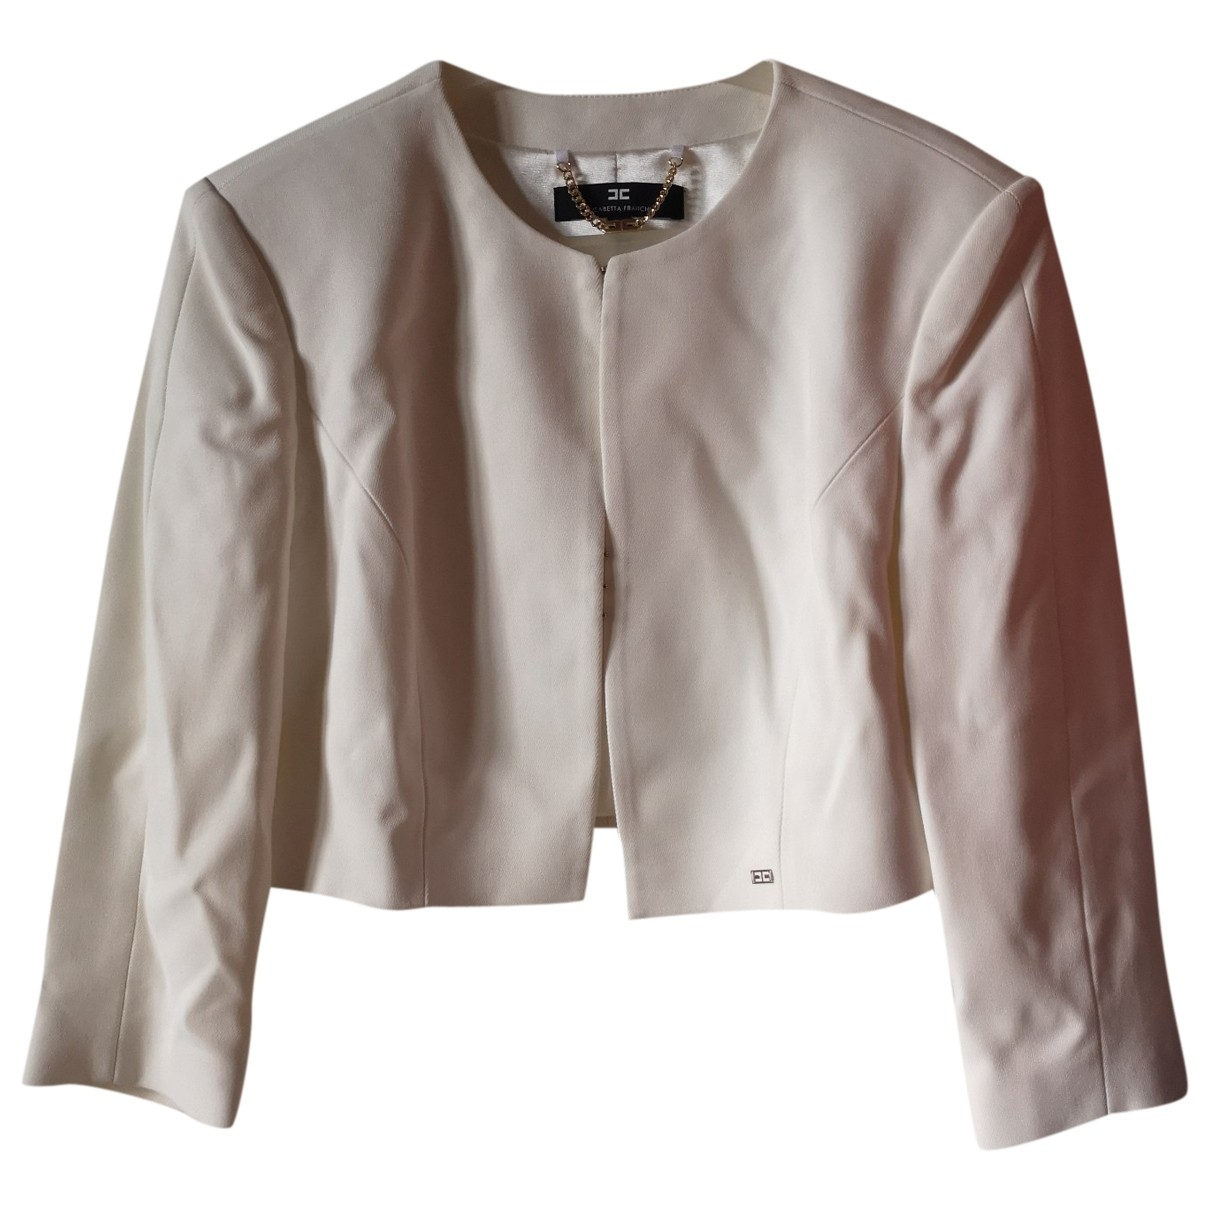 Elisabetta Franchi \N White jacket for Women 44 IT